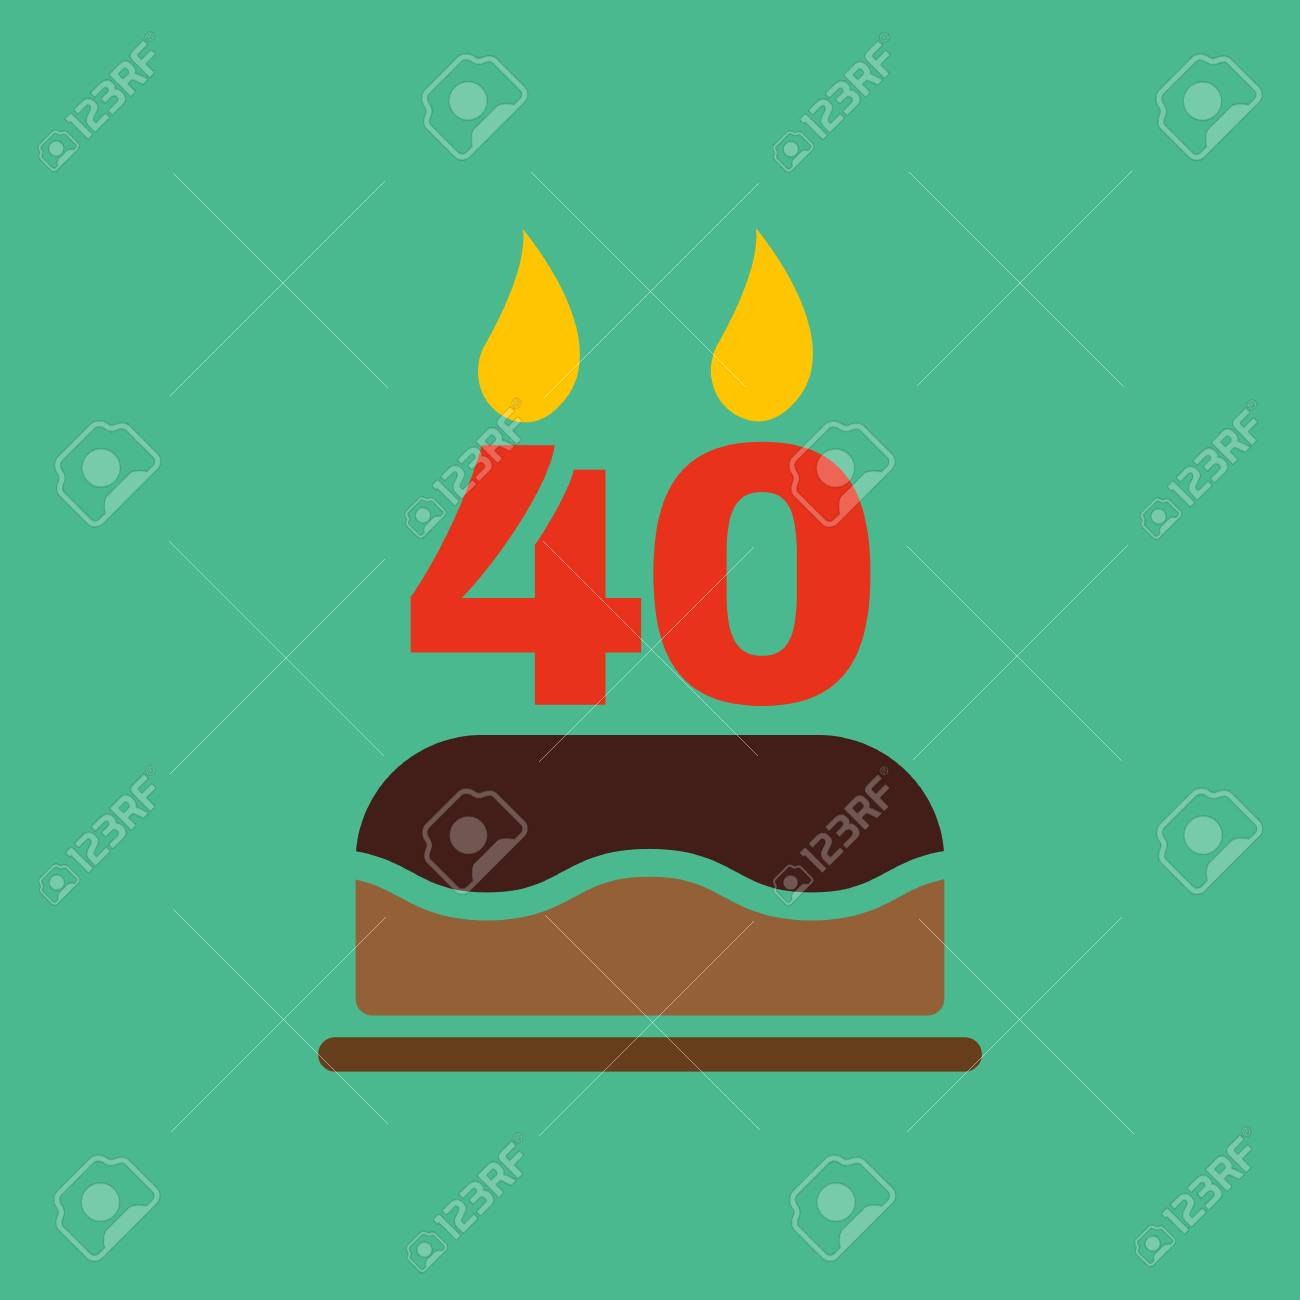 The Birthday Cake With Candles In The Form Of Number 40 Icon